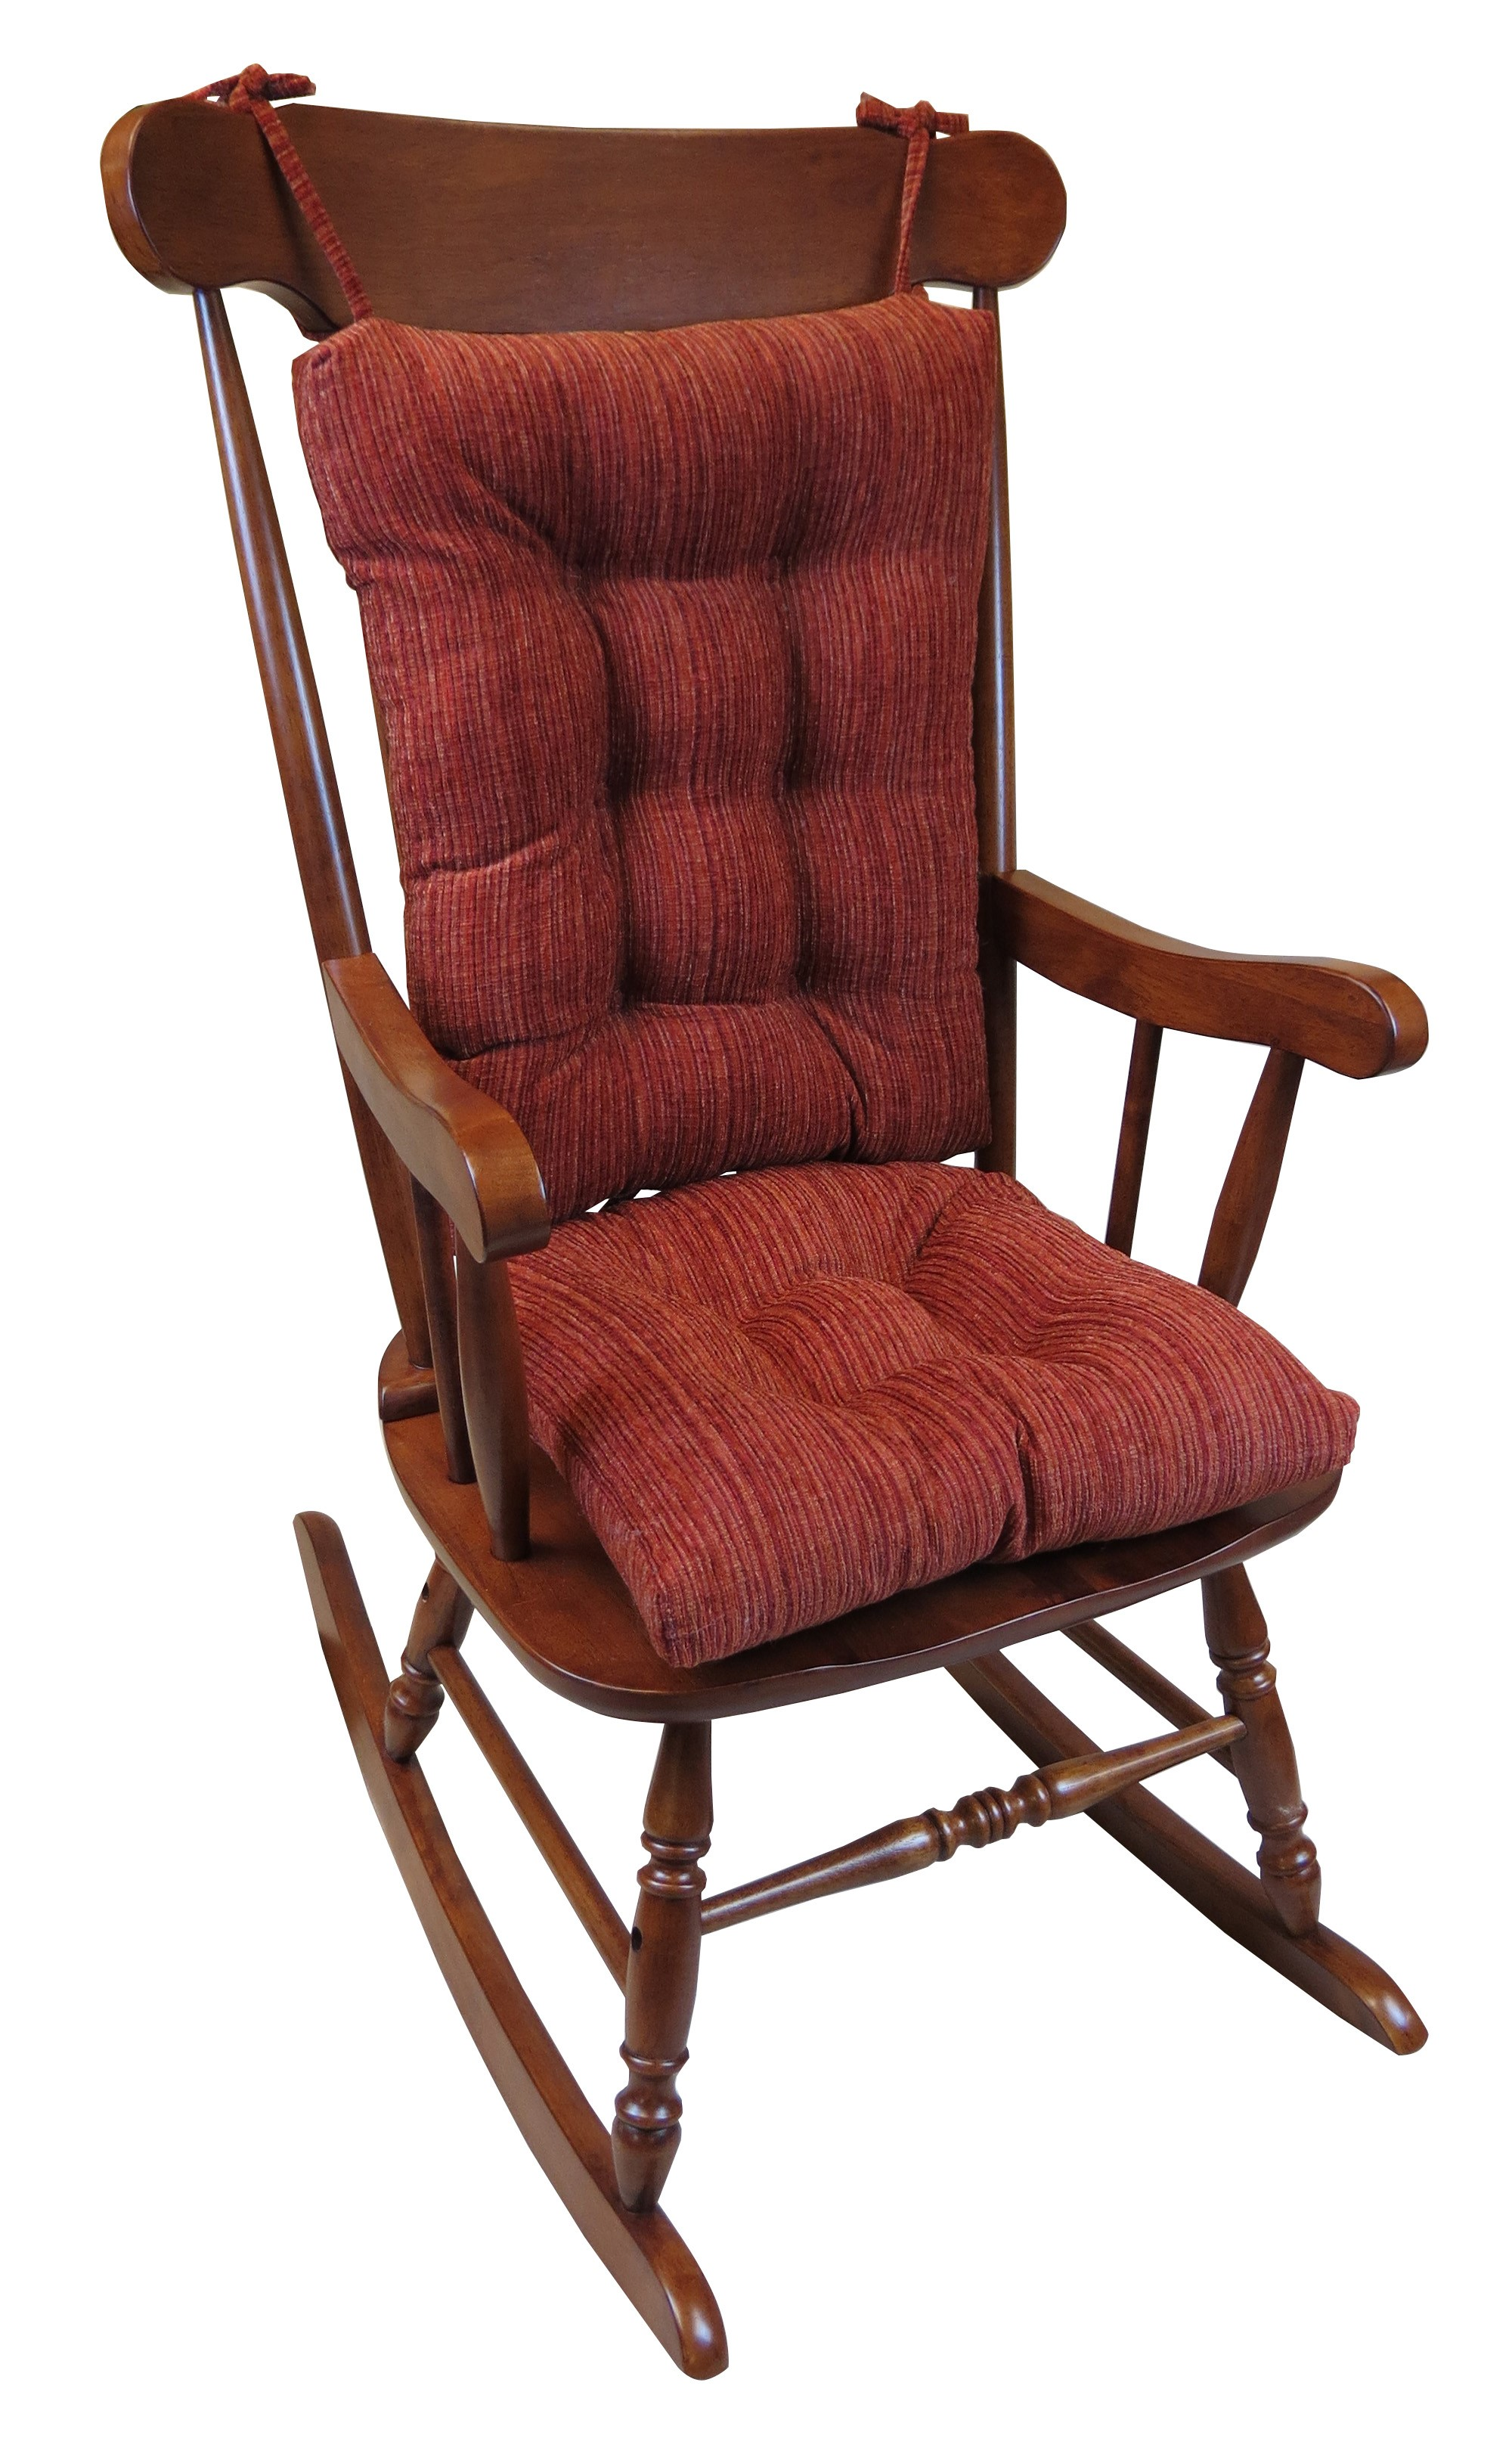 The Gripper Large Universal Rocking Chair Cushion Crushed